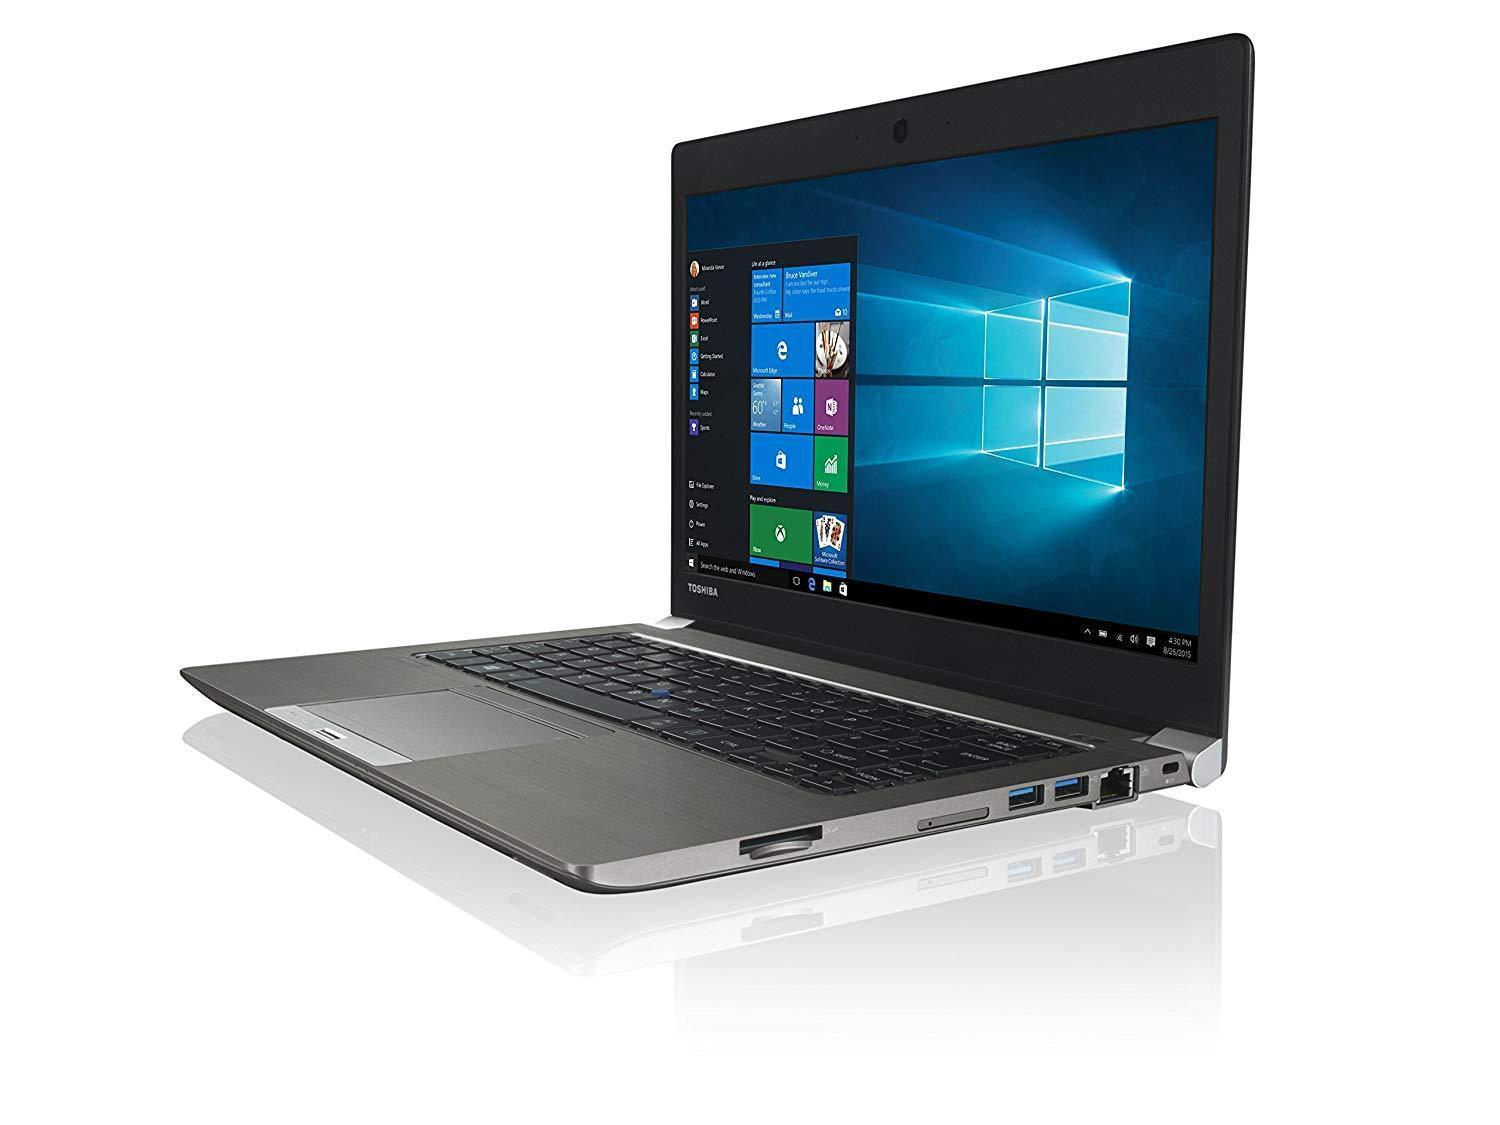 Toshiba Tecra A40-C Ex Lease Laptop Intel Core i5 6200U 2.4GHZ 8GB 480 GB SSD NEW! 14 Inch Screen WebCam Windows 10 Home